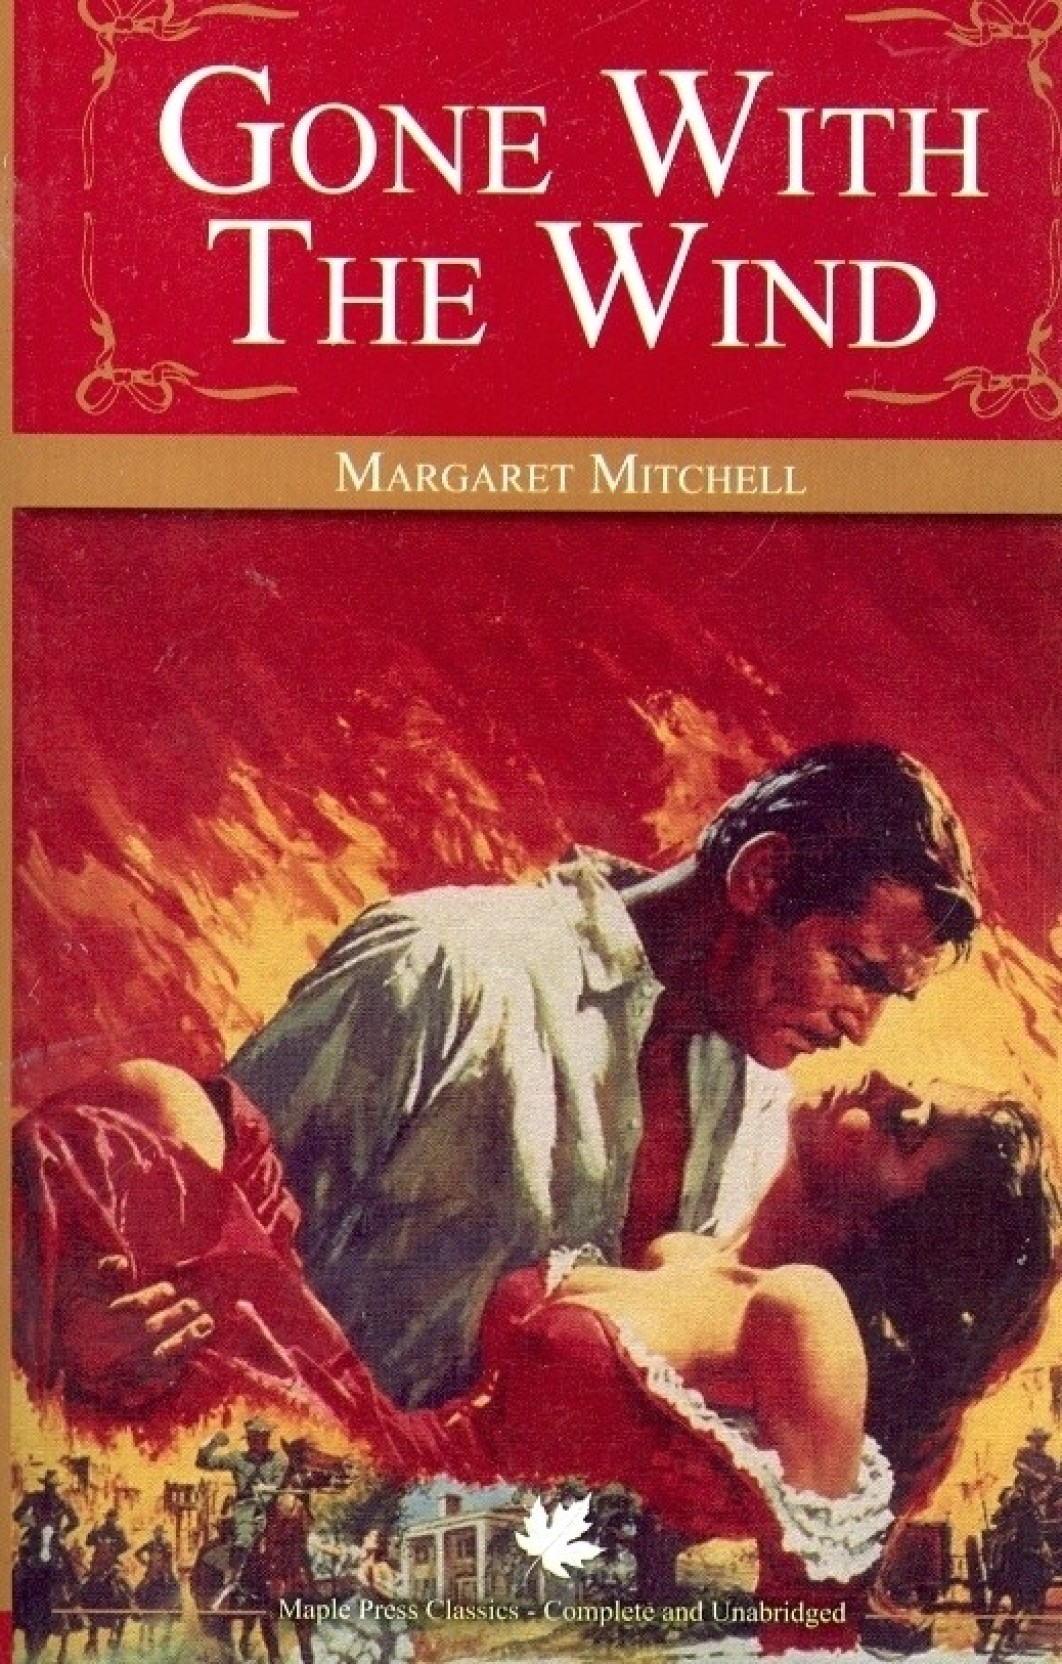 the survival of gone with the wind english literature essay The outsiders summary from litcharts | the creators of and reading from gone with the wind dally comes to visit them and, on the way back from his grades begin to suffer, and he almost turns to violence his english teacher offers him a chance to pass by writing a final essay on.